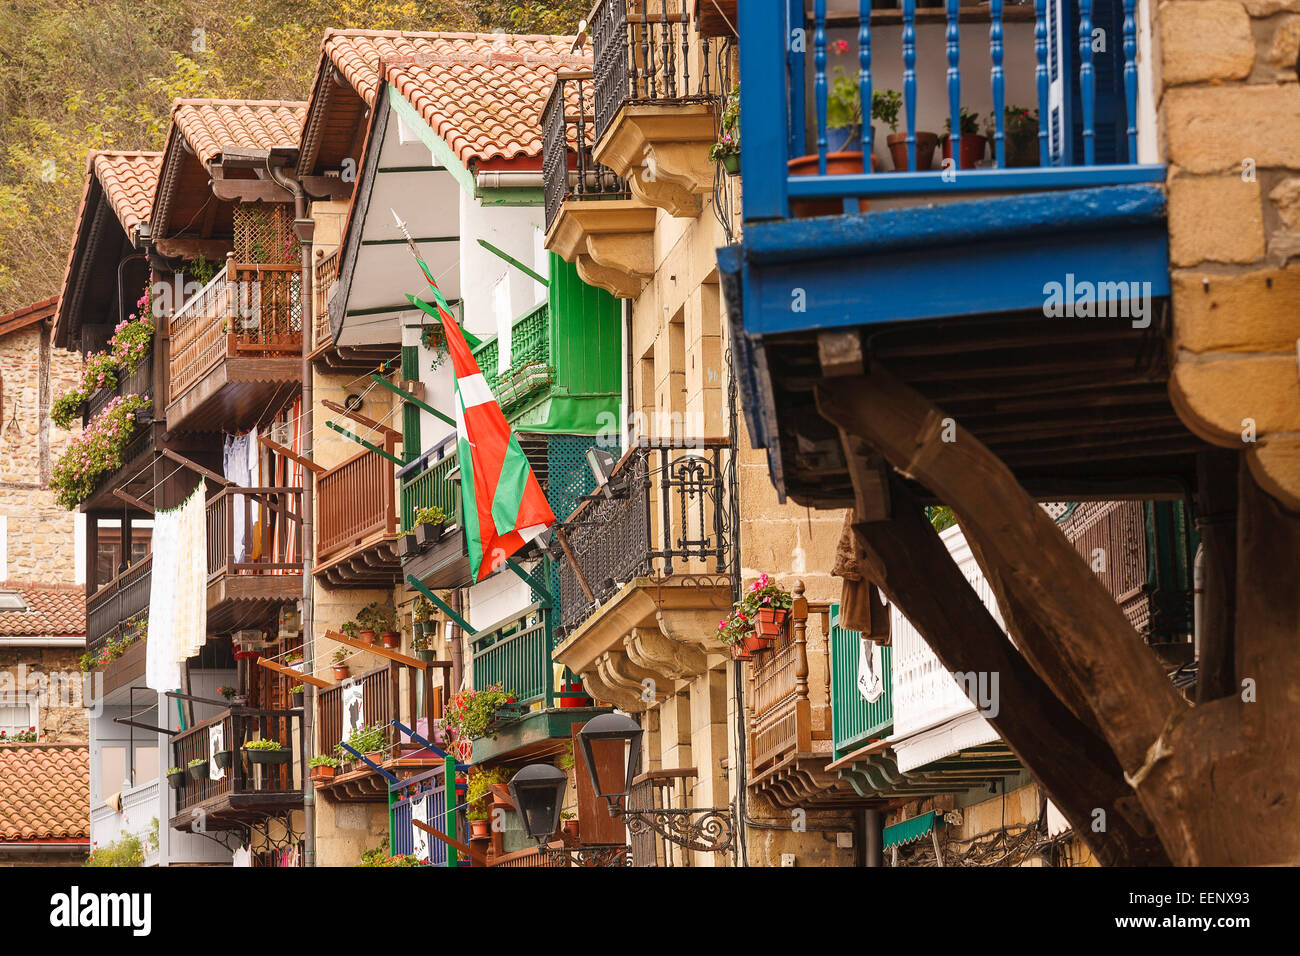 Balcony. Pasaia. Pasajes de San Juan. Guipuzcoa. Basque country. Spain. Europe - Stock Image